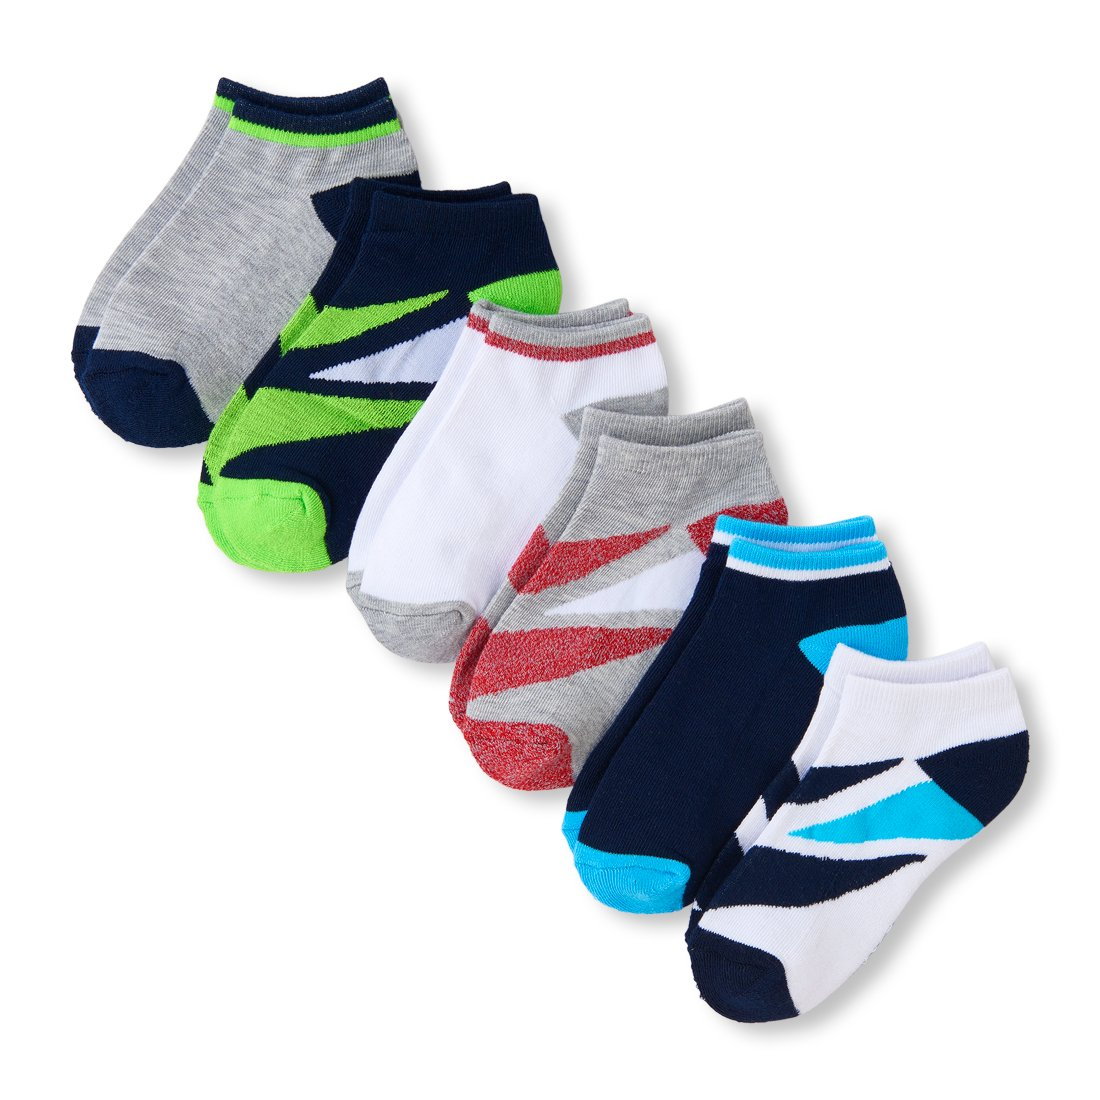 The Children's Place Boys' Big 6 Pack Sport Ankle Sock, Multi CLR, S 11-13